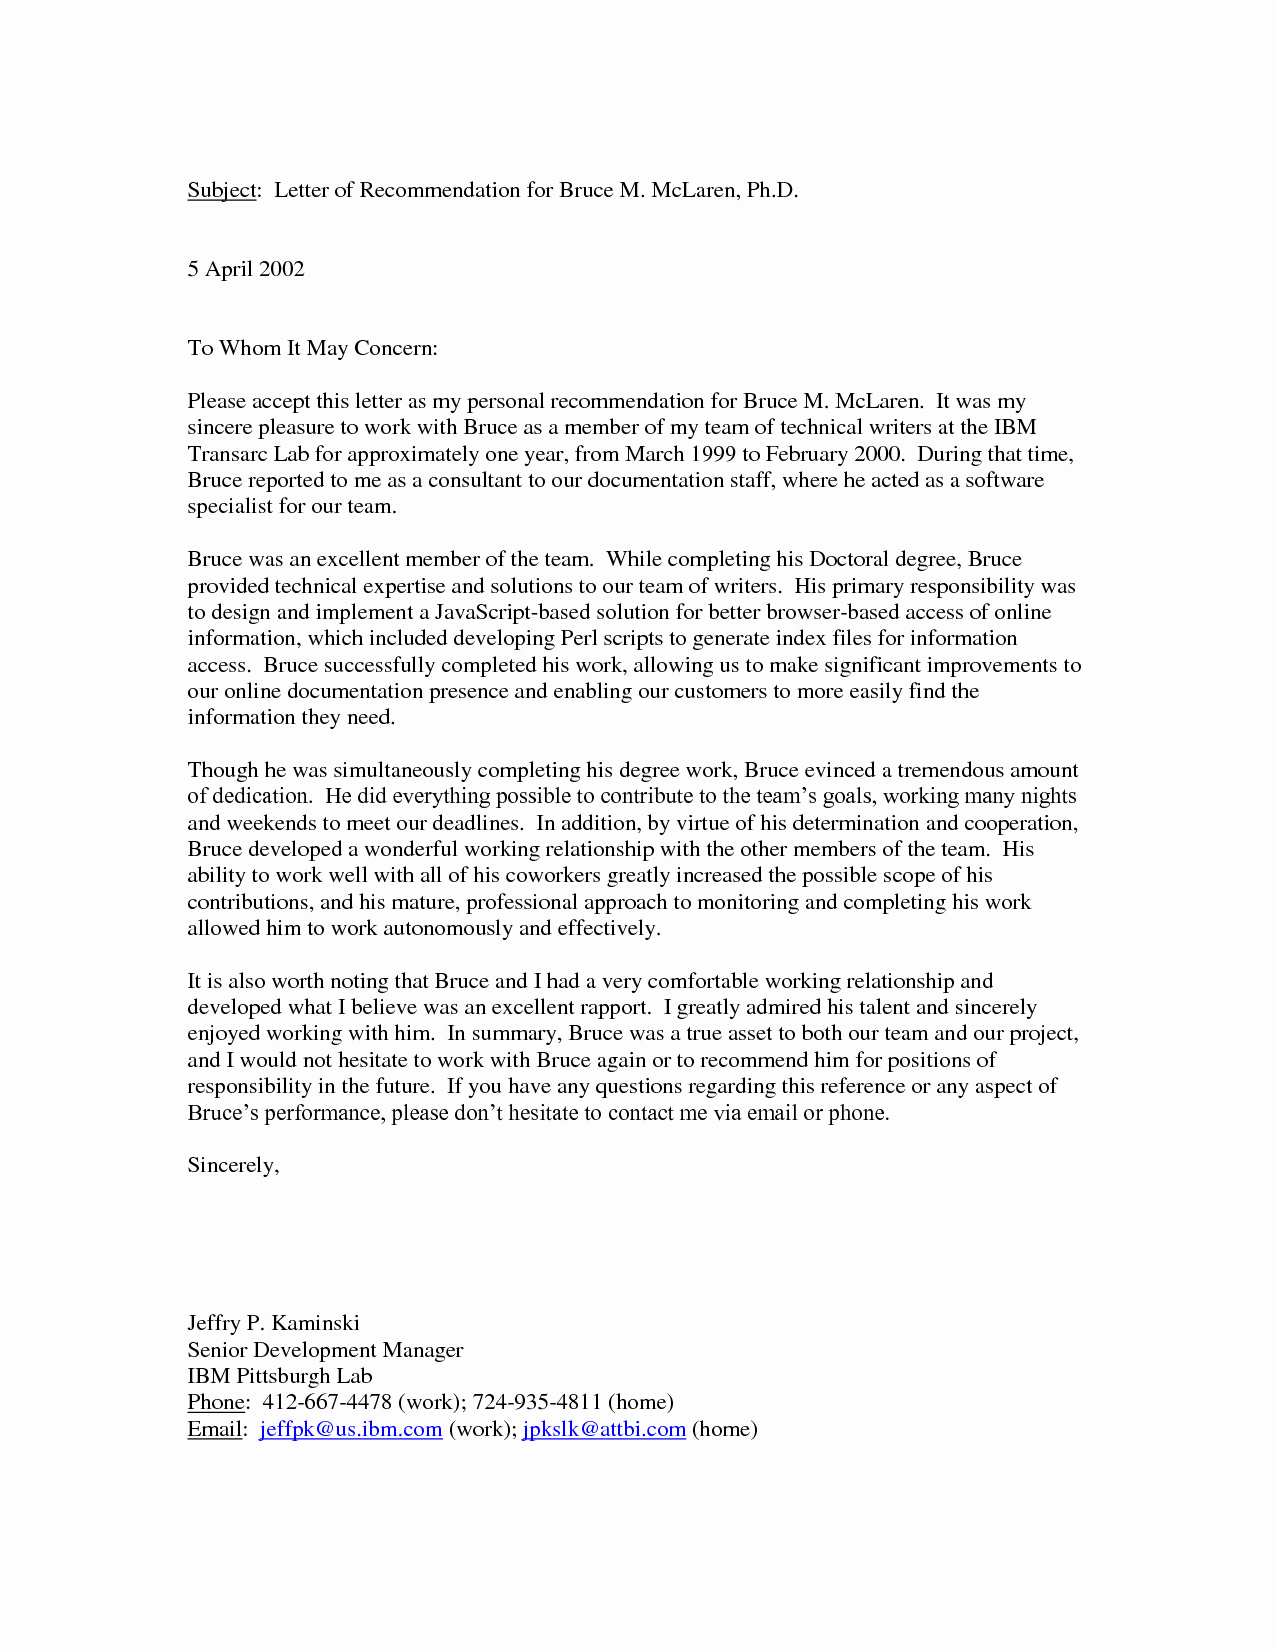 Personal Recommendation Letter Sample New Personal Letter Re Mendation